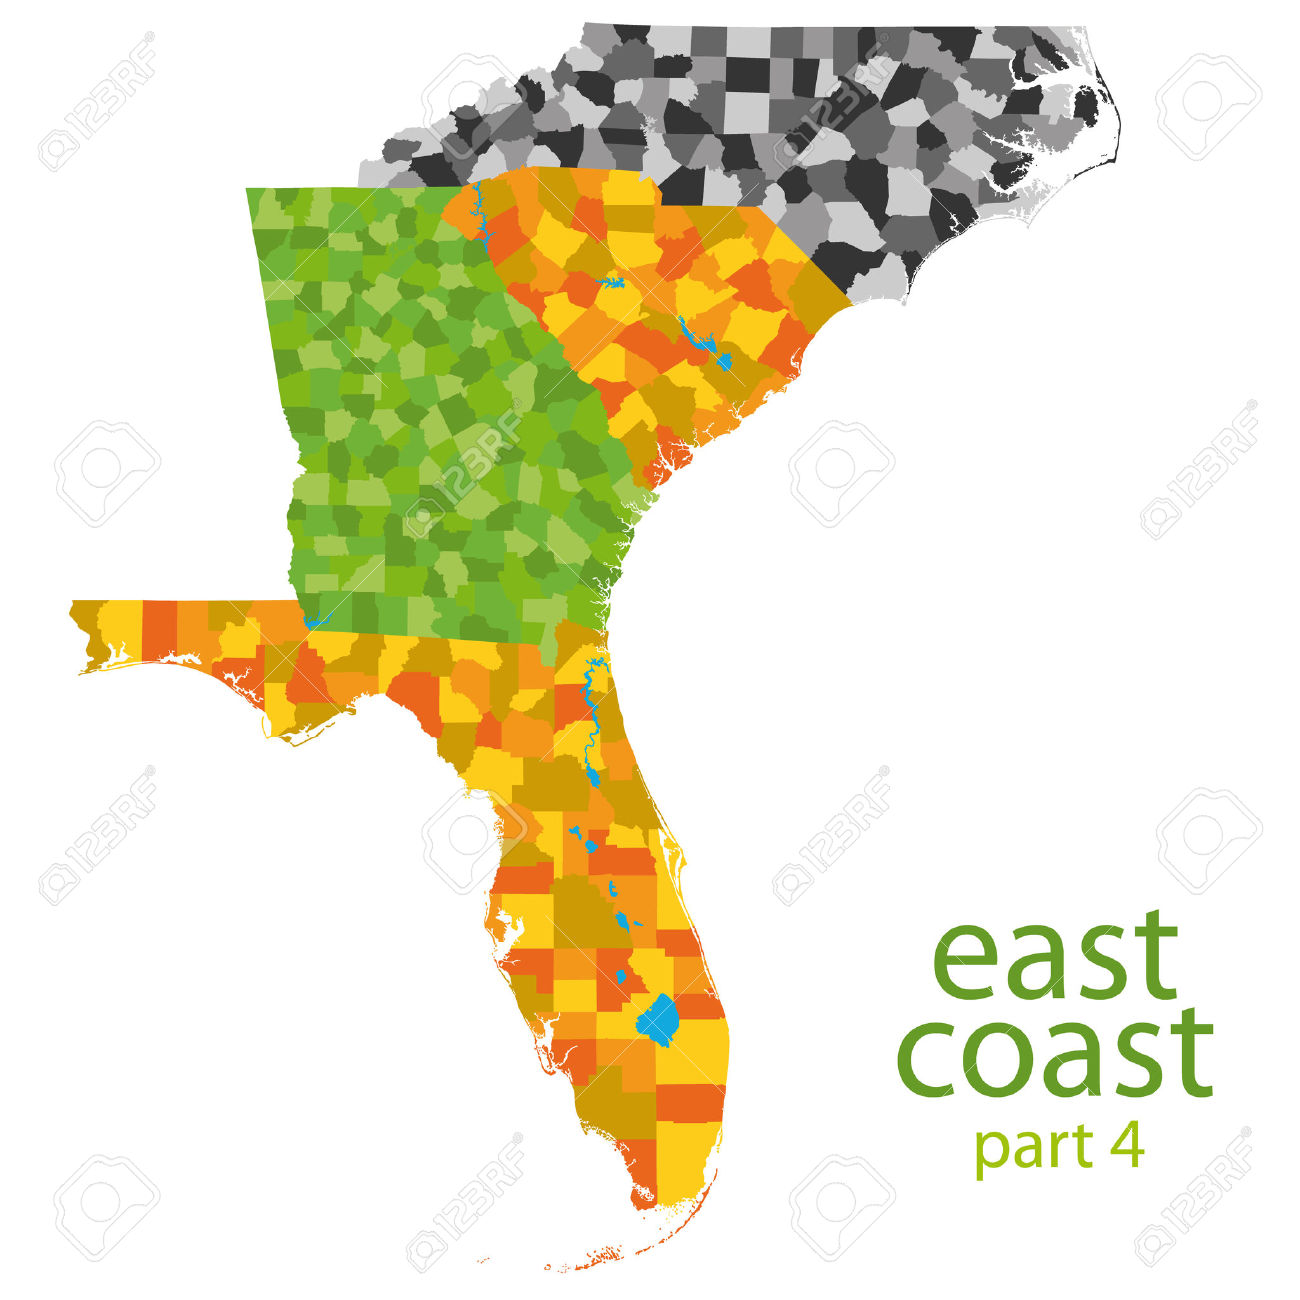 East Coast clipart #5, Download drawings